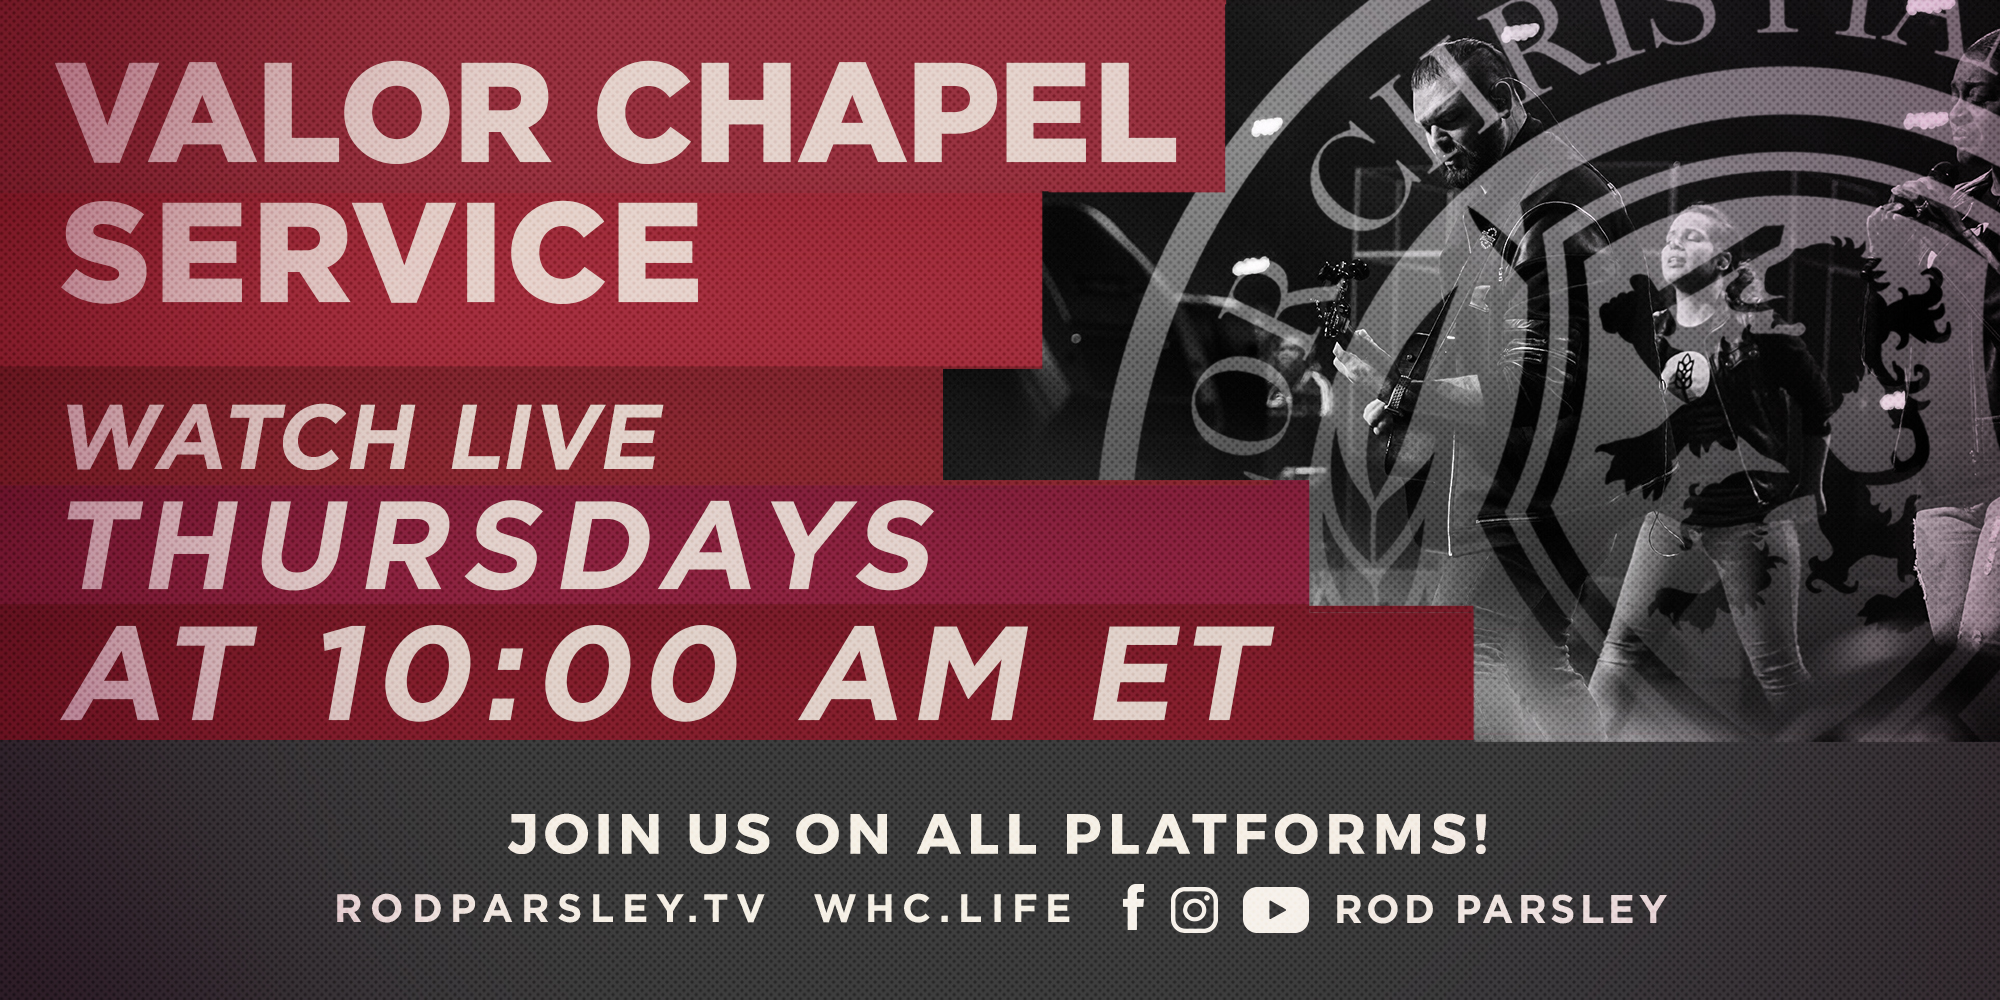 Valor Chapel Service Watch Live Thursdays at 10:00 Am Et Join Us on All Platforms! Rodparsley.Tv Whc.Life Facebook Youtube Instagram Rod Parsley